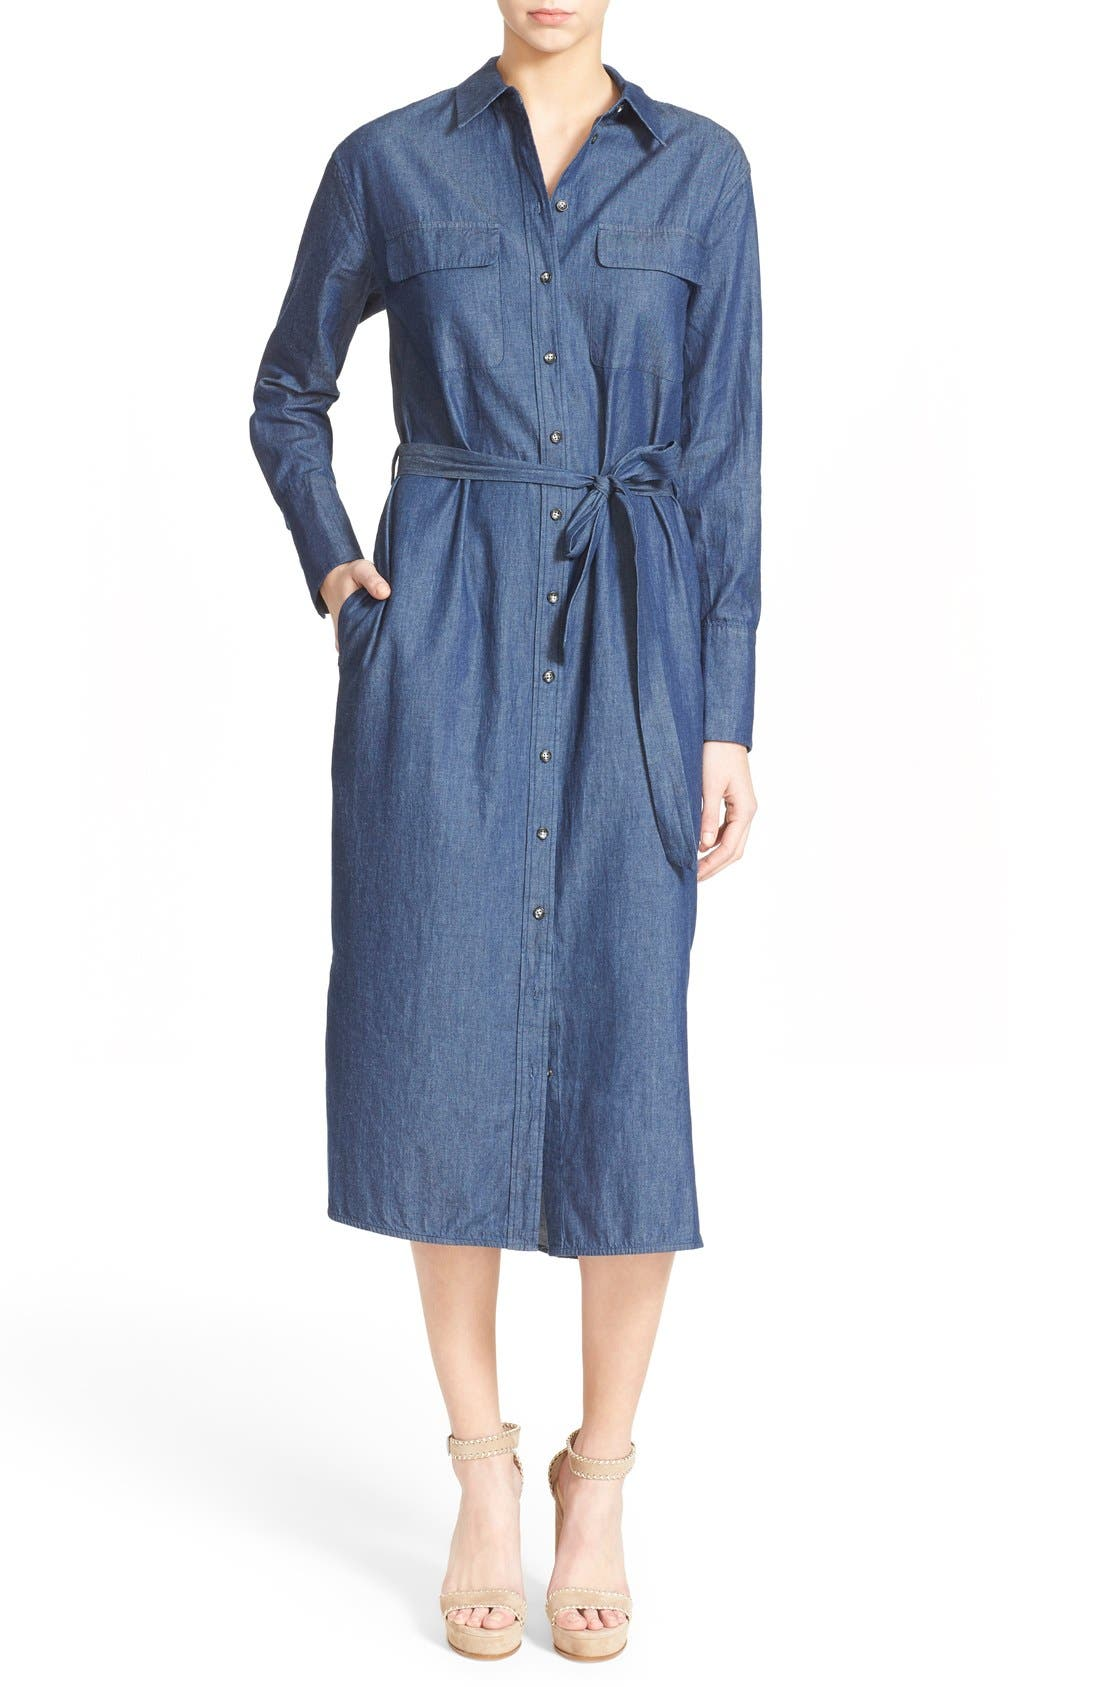 Main Image - Equipment 'Delany' Chambray Cotton Shirtdress